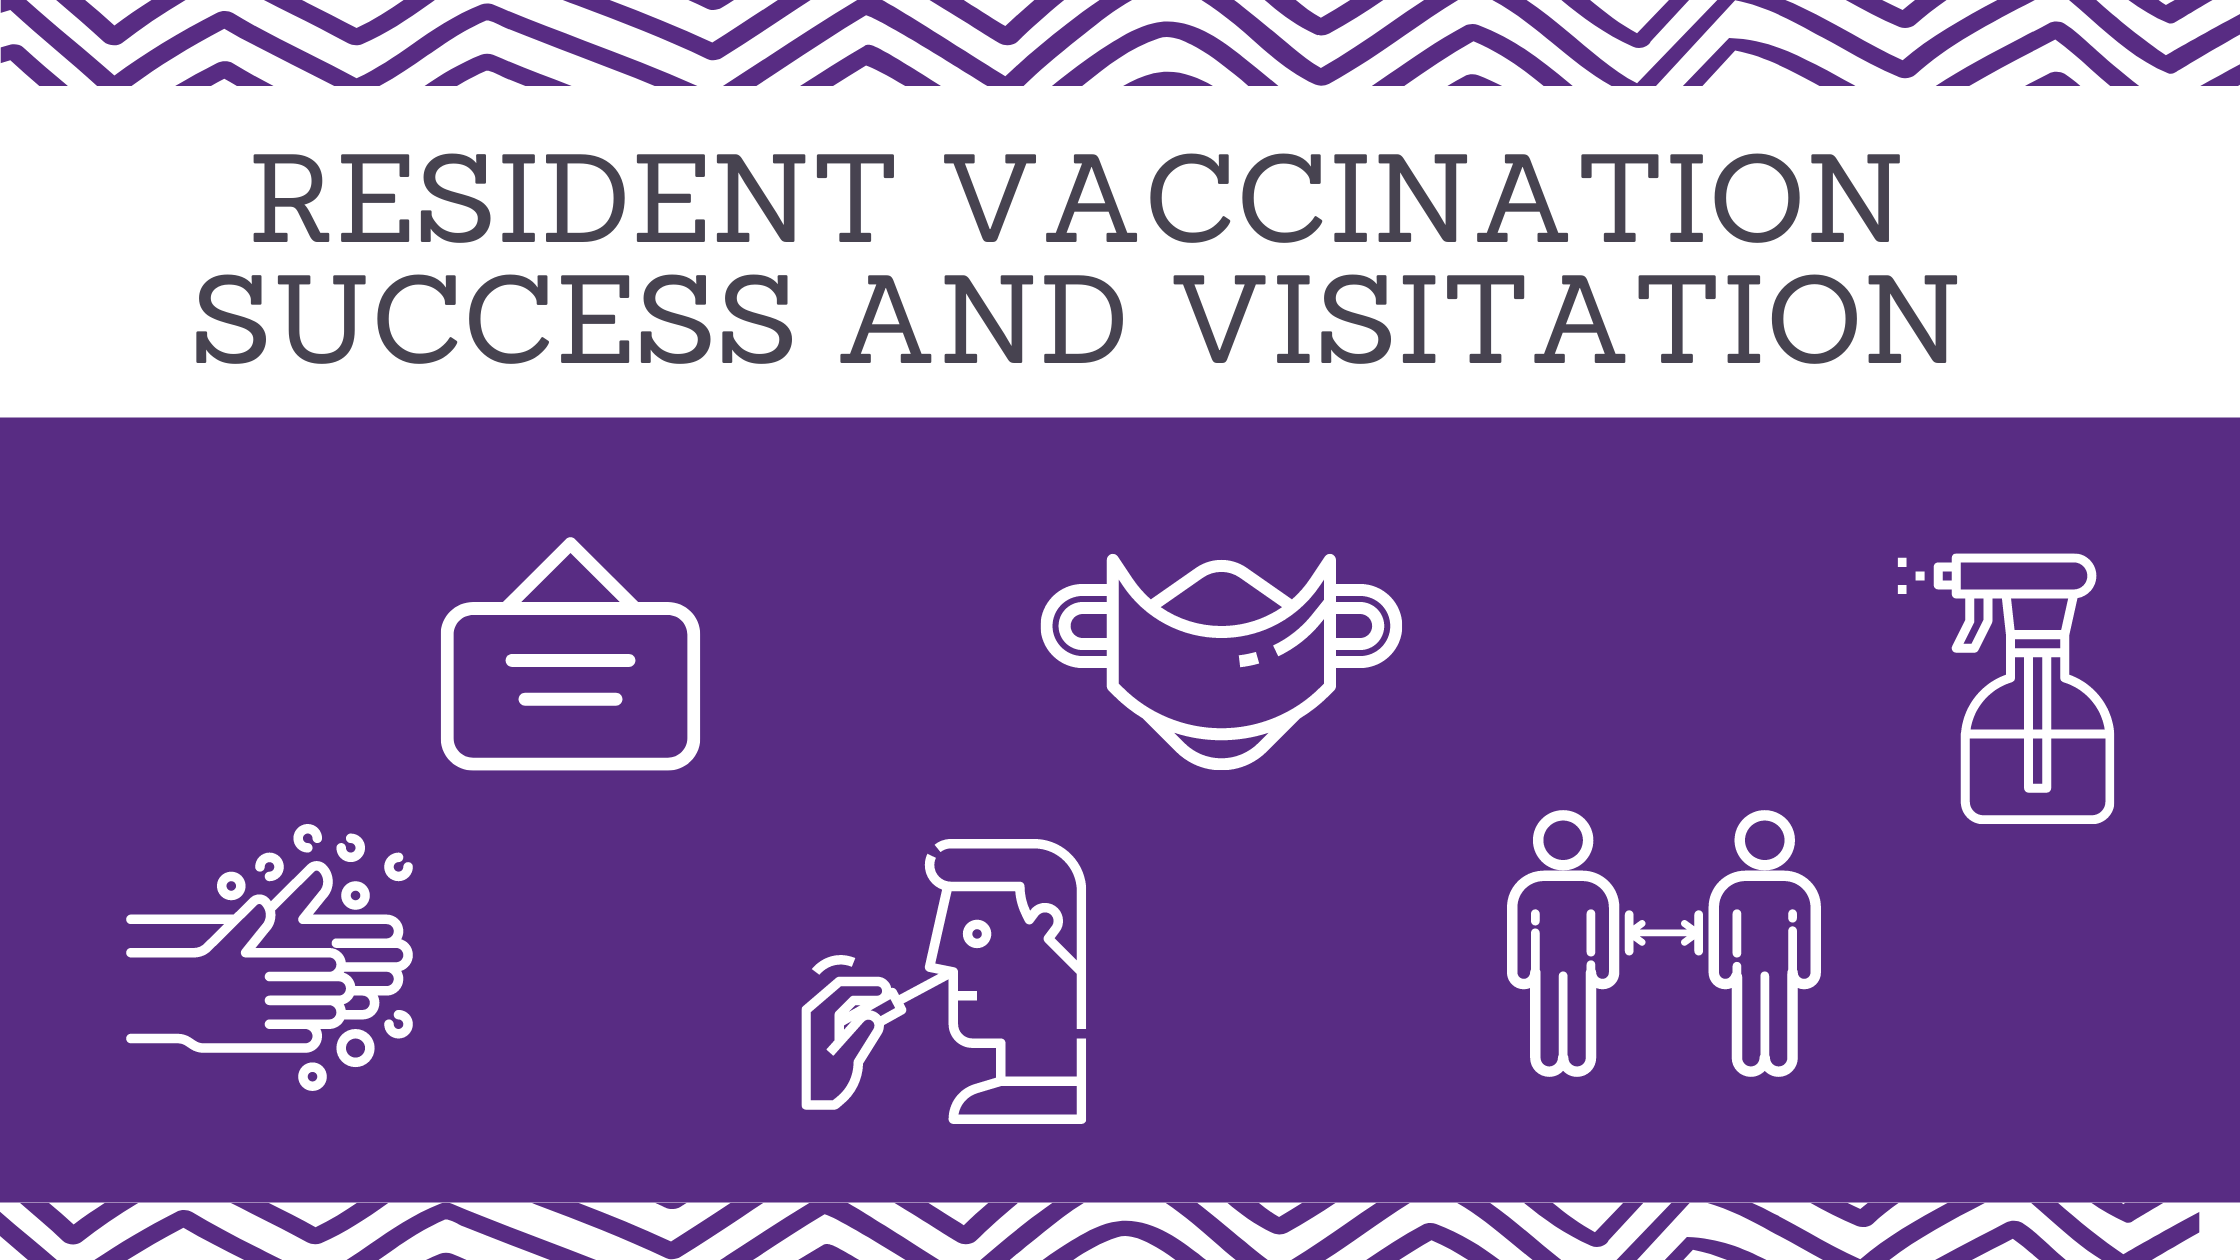 resident vaccination success and visitation